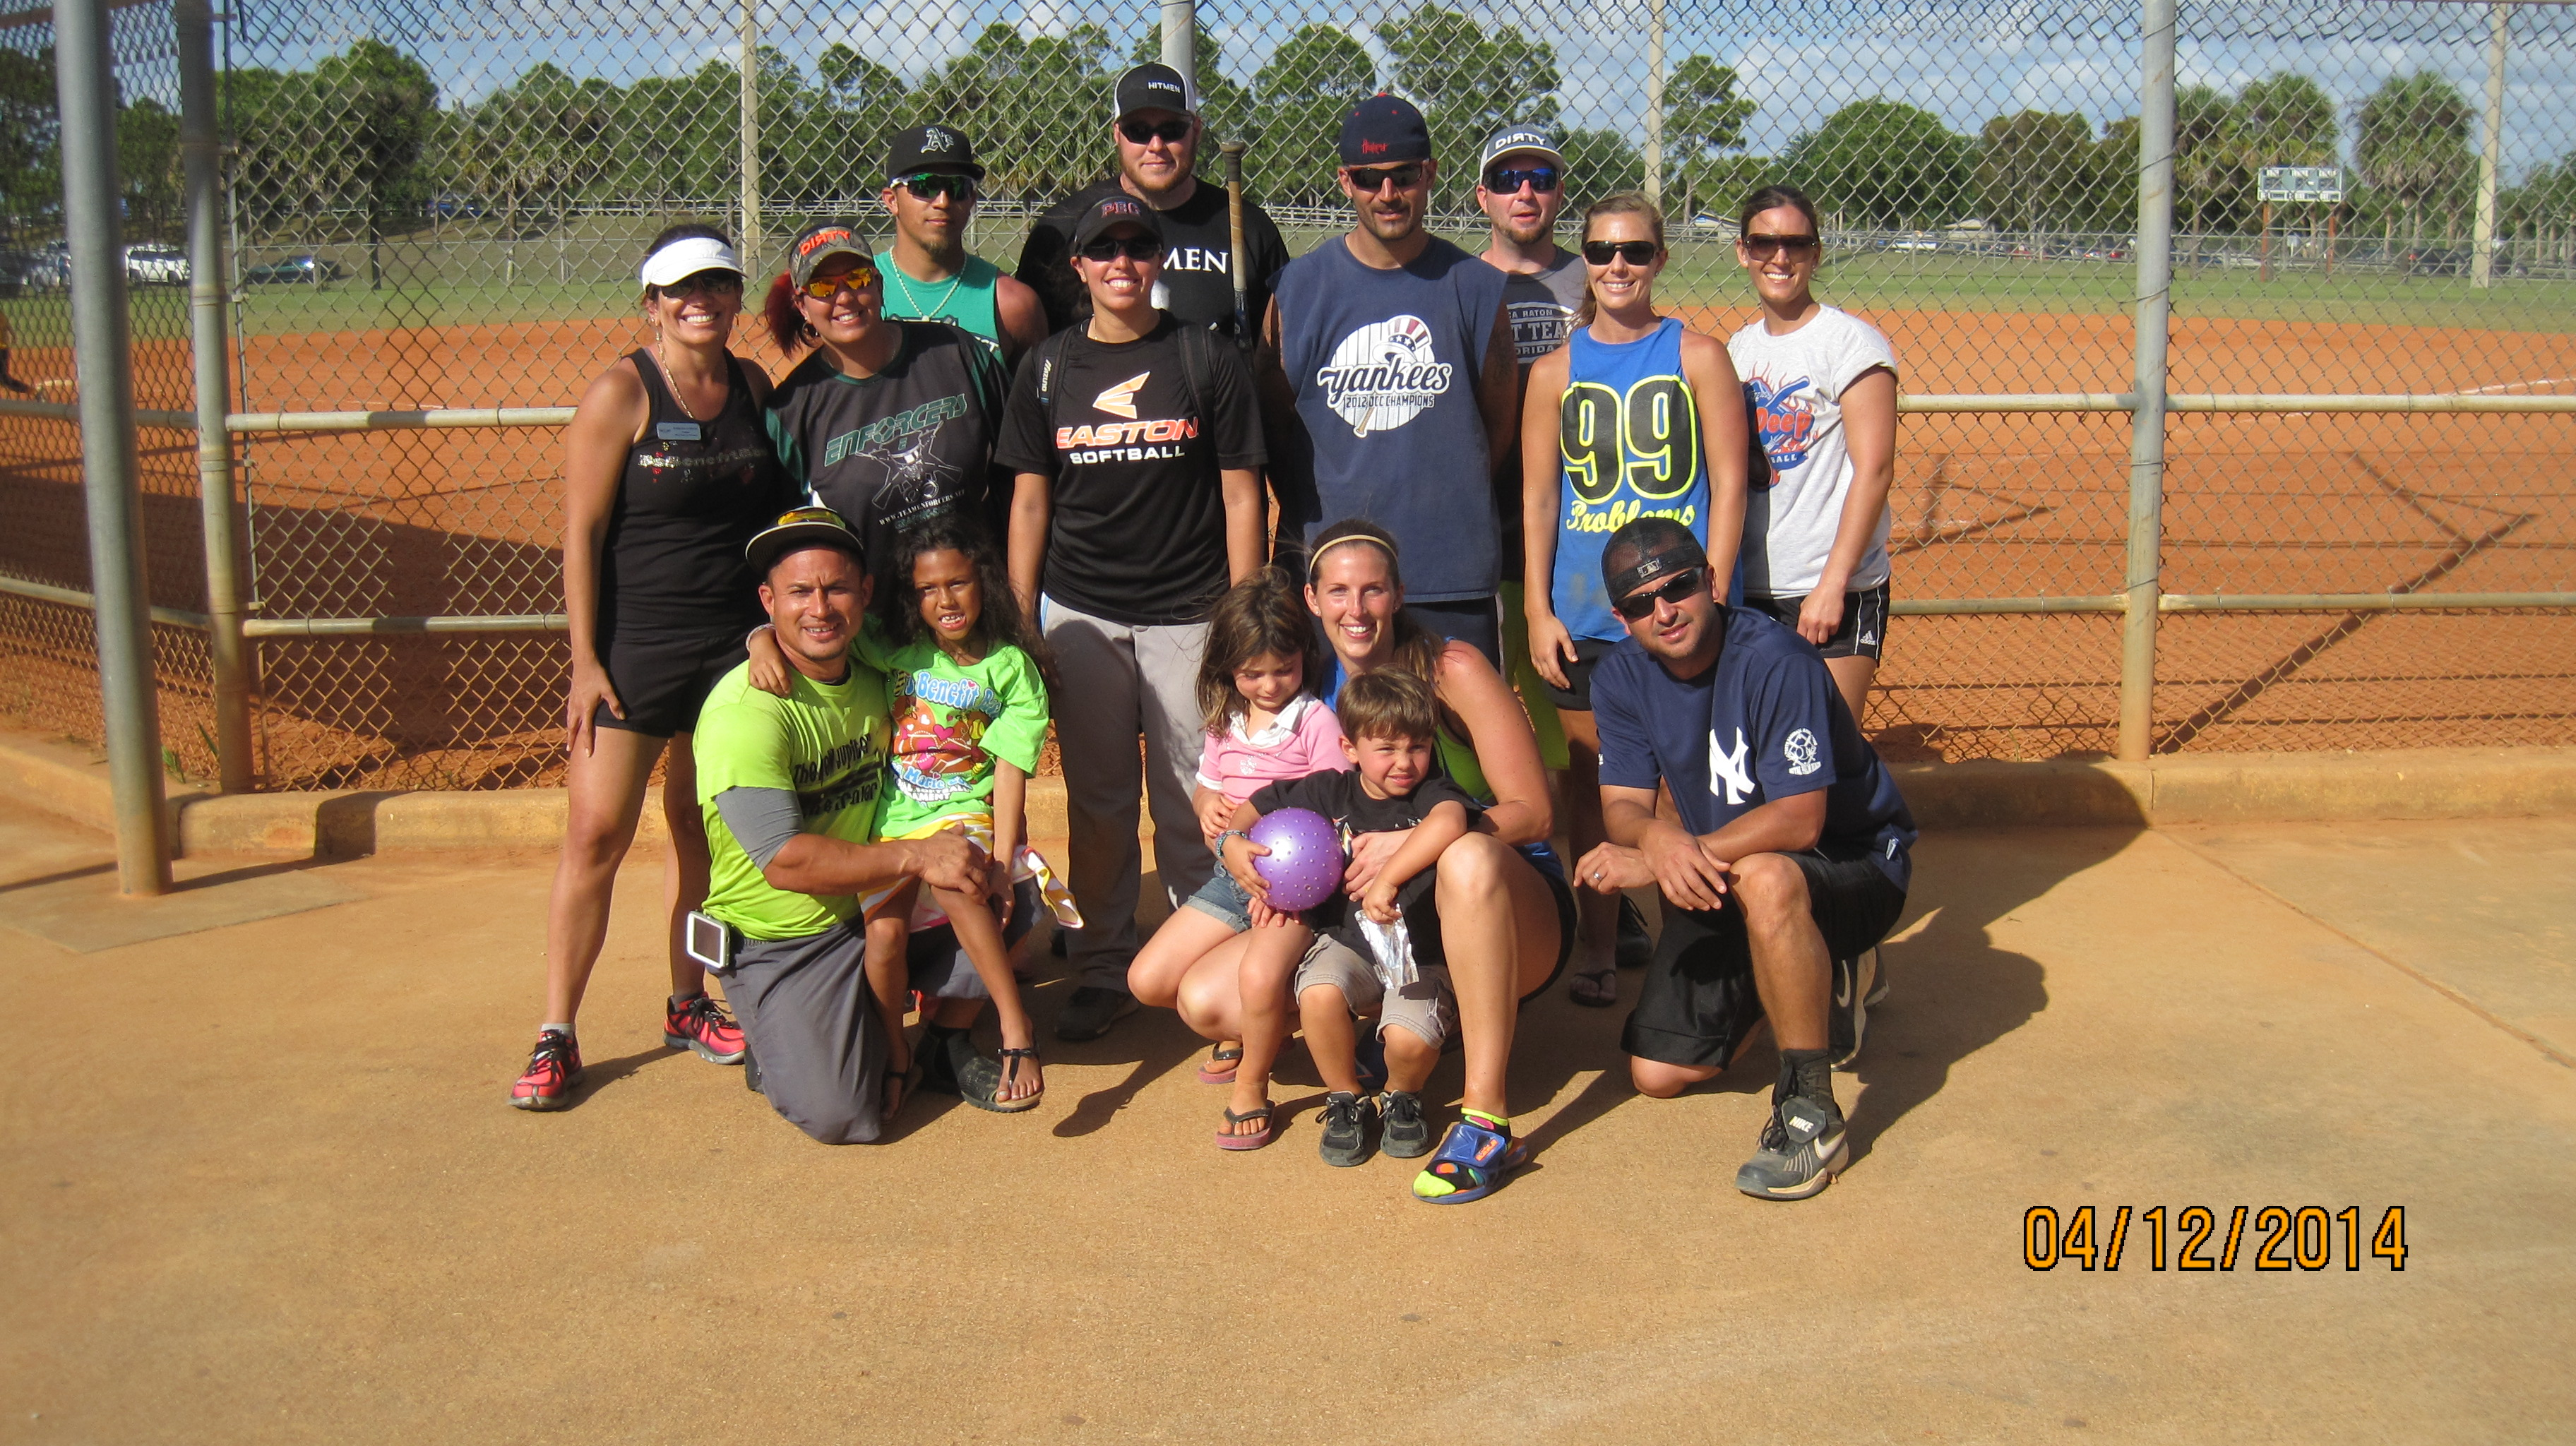 2014 Co-ed Slowpitch Tournament Played in Perfect Weather ...